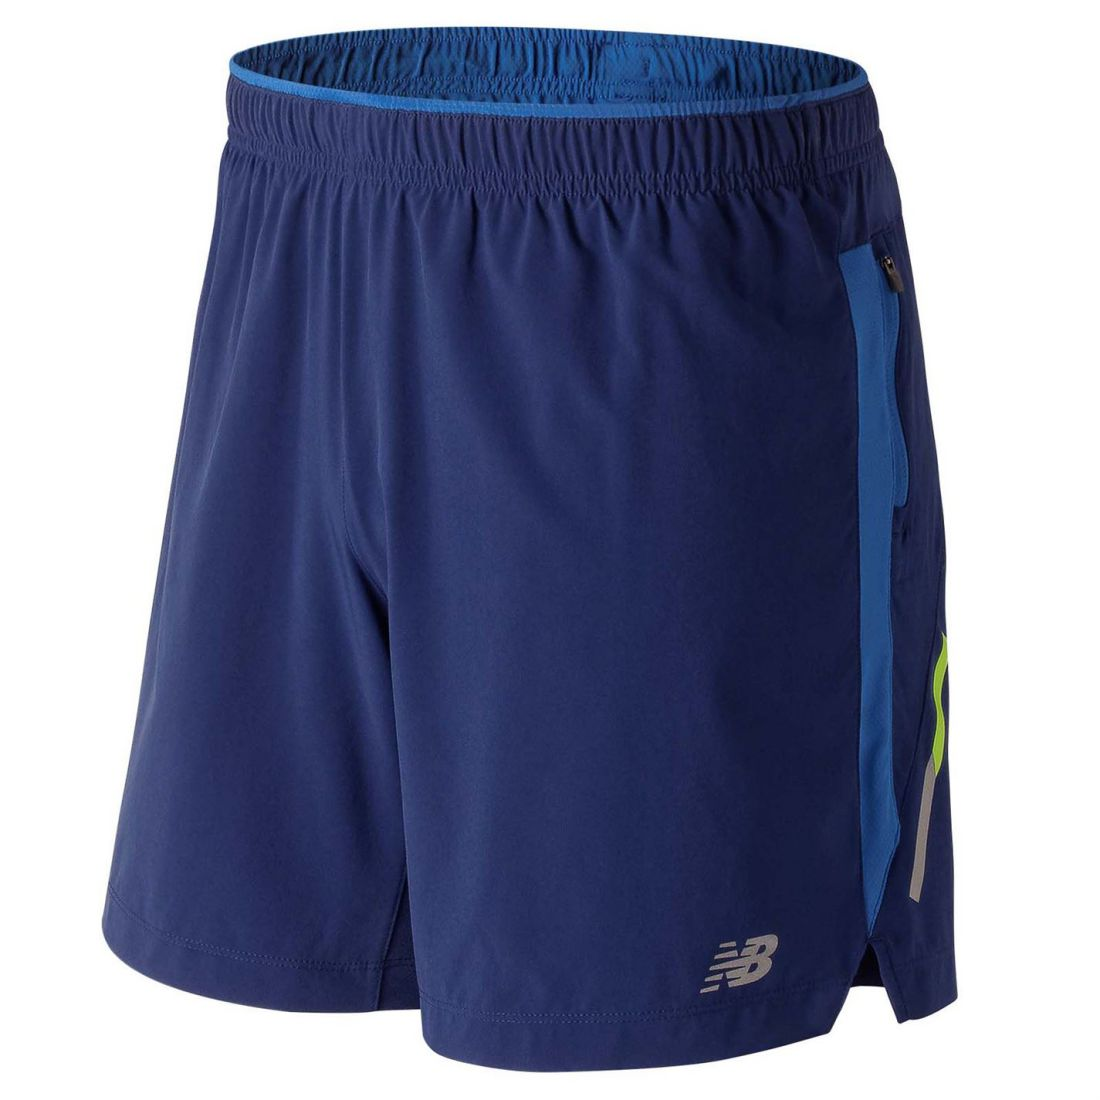 New Balance Impact 7in Sht Performance Shorts Mens